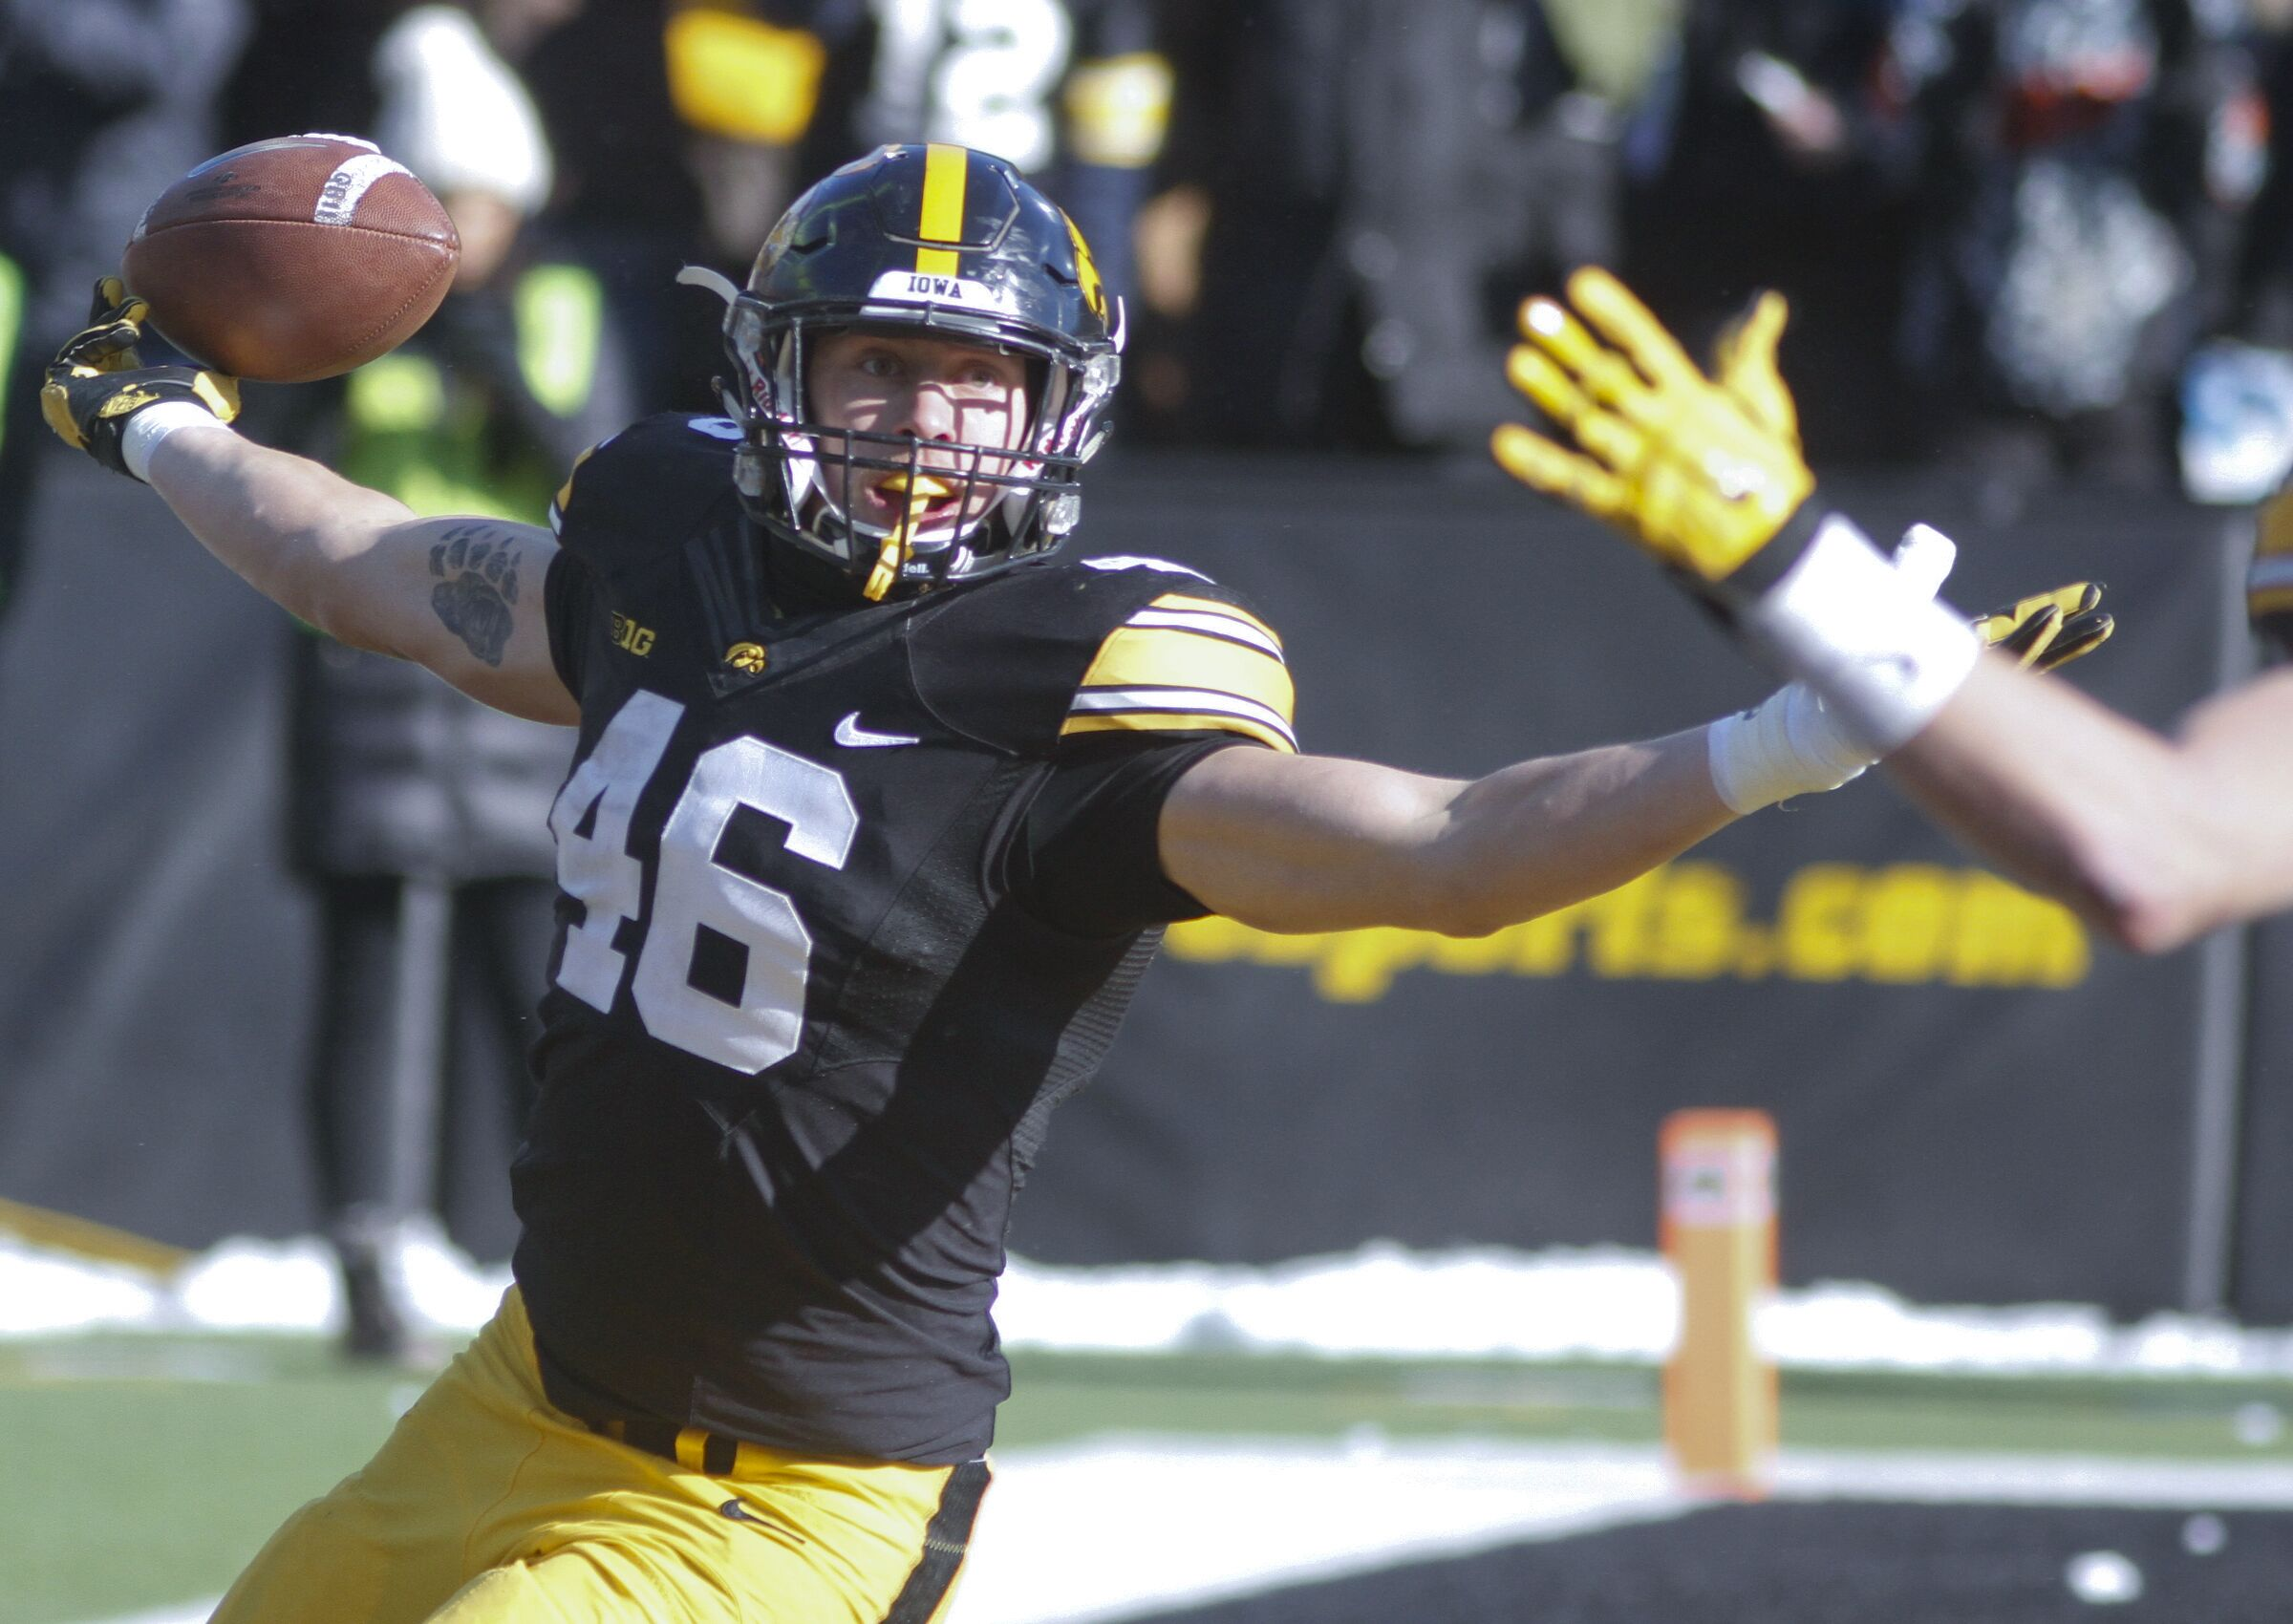 Iowa football: Top father and son duos in Hawkeyes history